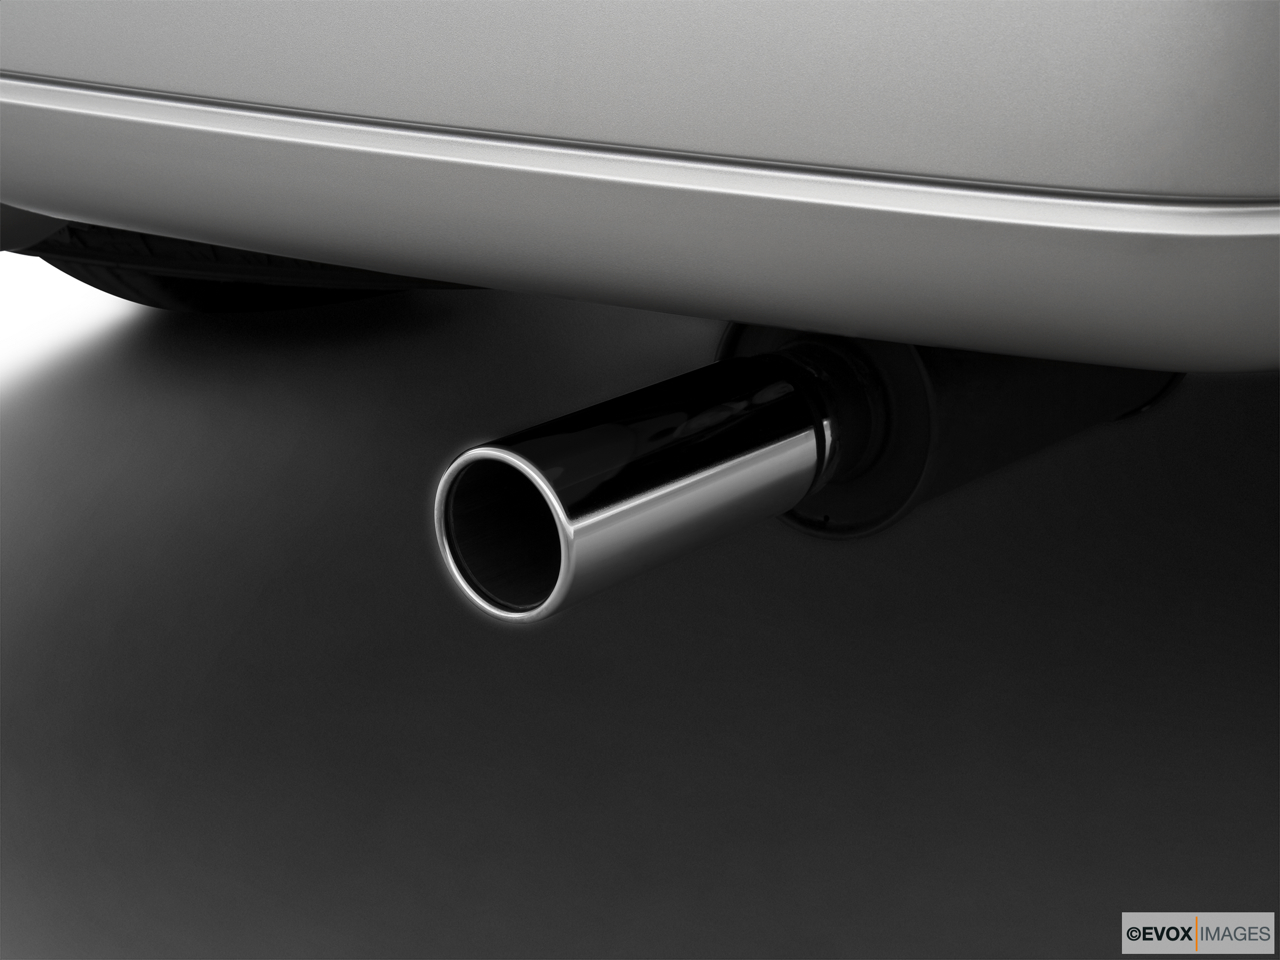 2010 Lincoln Navigator Base Chrome tip exhaust pipe.